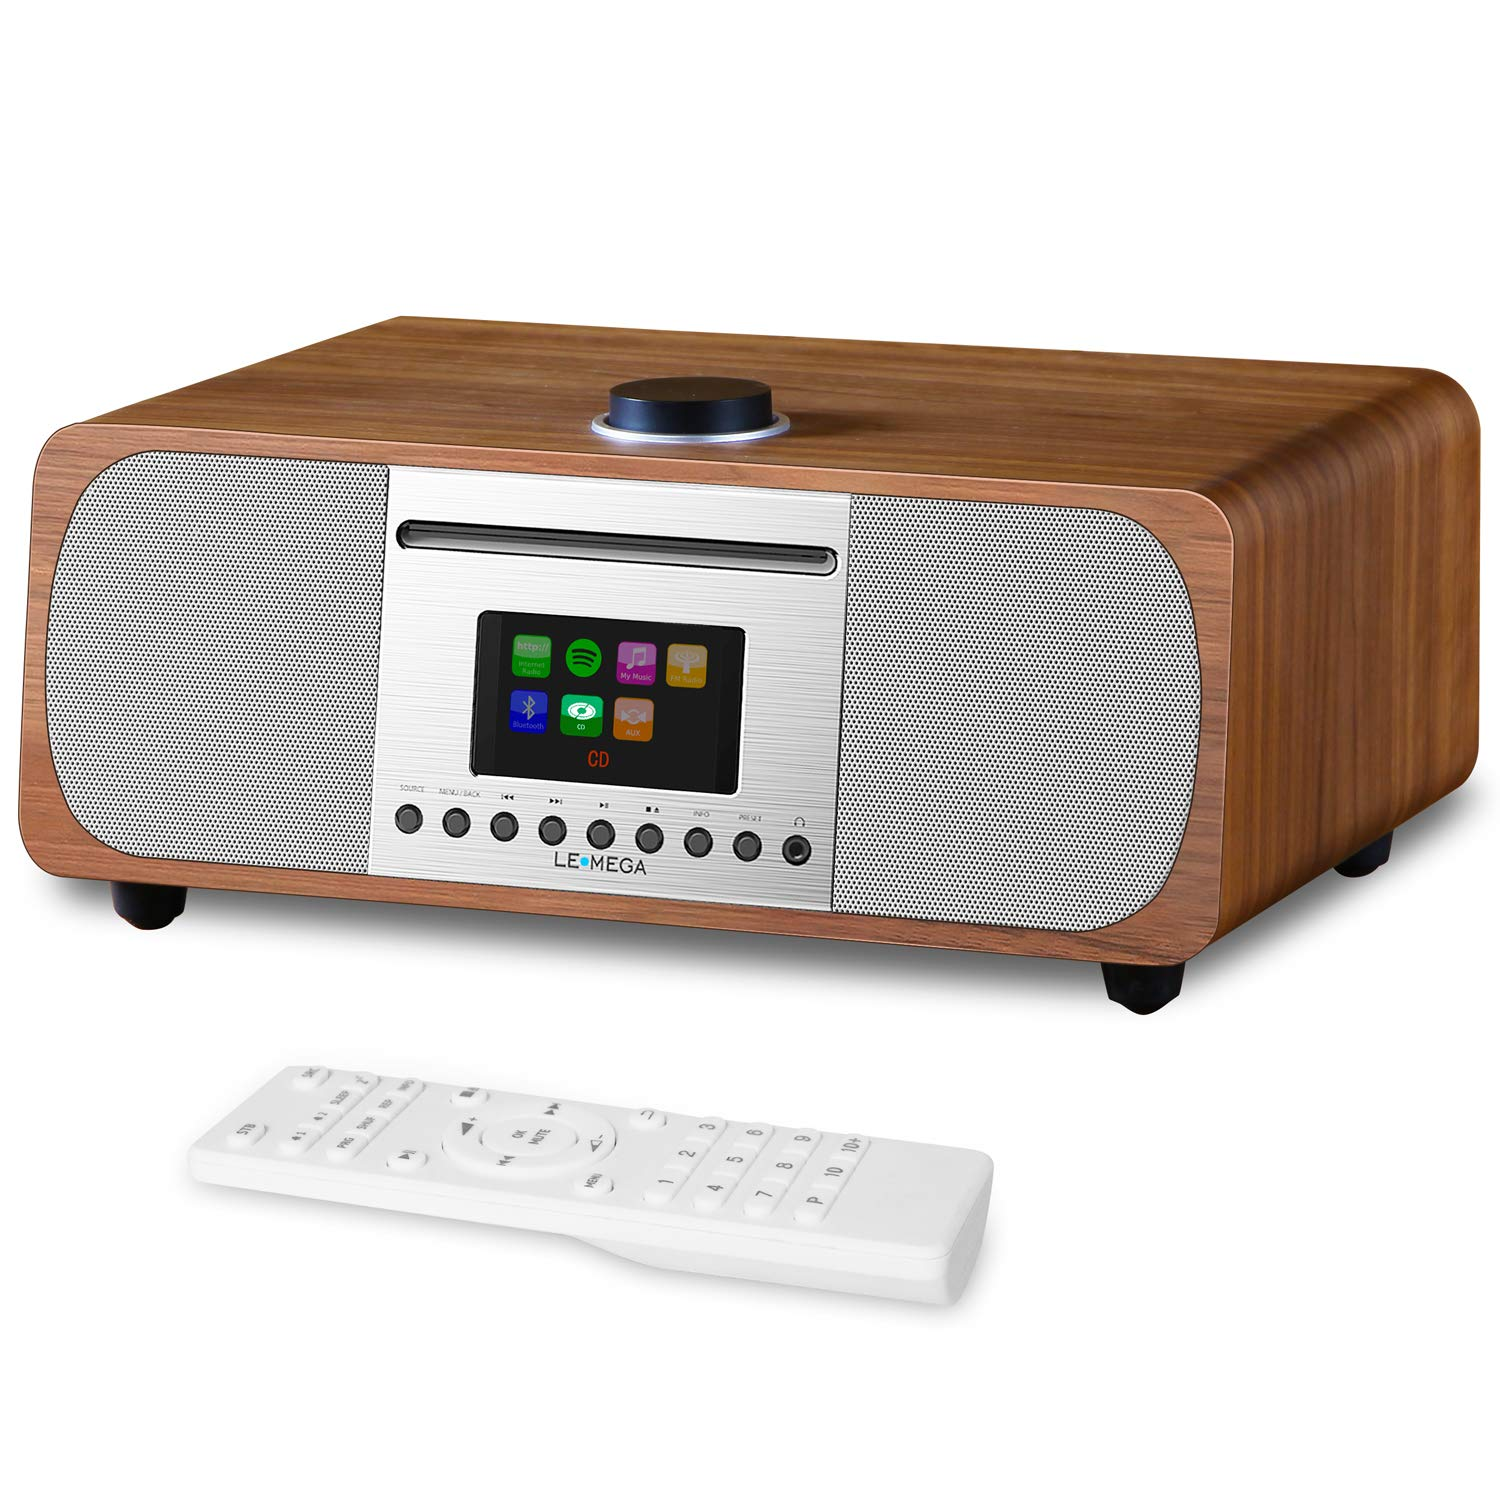 LEMEGA M5+ All-in-One HiFi Music System with CD Player, Internet Radio, FM Radio, Spotify, Bluetooth, WiFi, 2.1 Channel Stereo Speaker, Headphone-Out, USB MP3, AUX-in, App & Remote Control (Walnut)